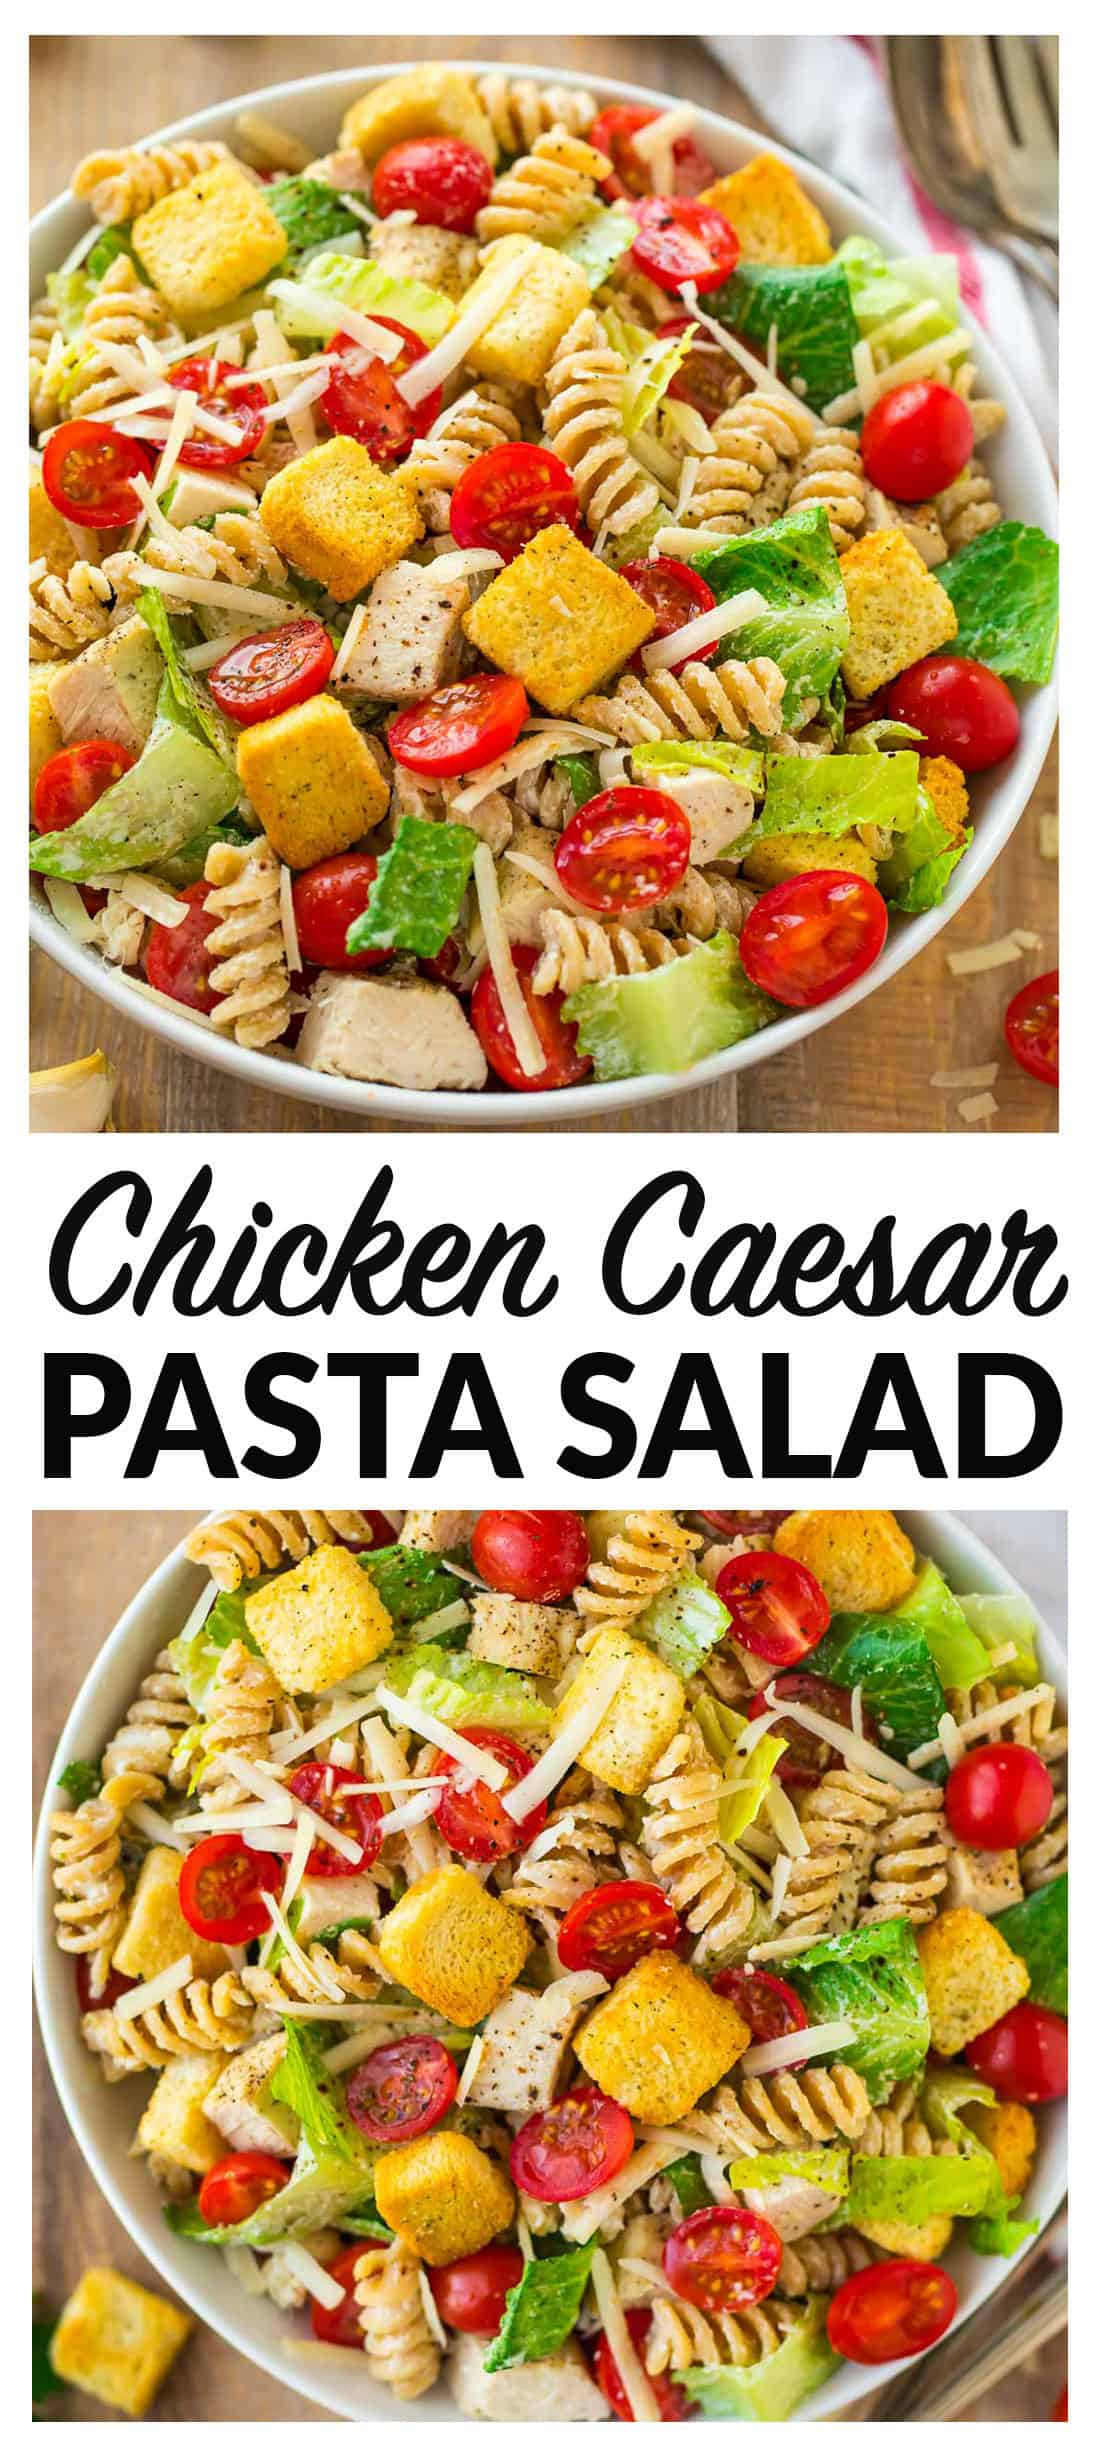 Healthy Chicken Caesar Pasta Salad. DELISH! Fresh, creamy, and packed with fresh veggies and juicy chicken. The dressing is made with Greek yogurt, so it's super creamy but much lighter. Perfect for parties, healthy lunches and dinners, and busy families. Use bowtie pasta or any shape you love. #pastasalad #healthy #chickencaesar #recipes